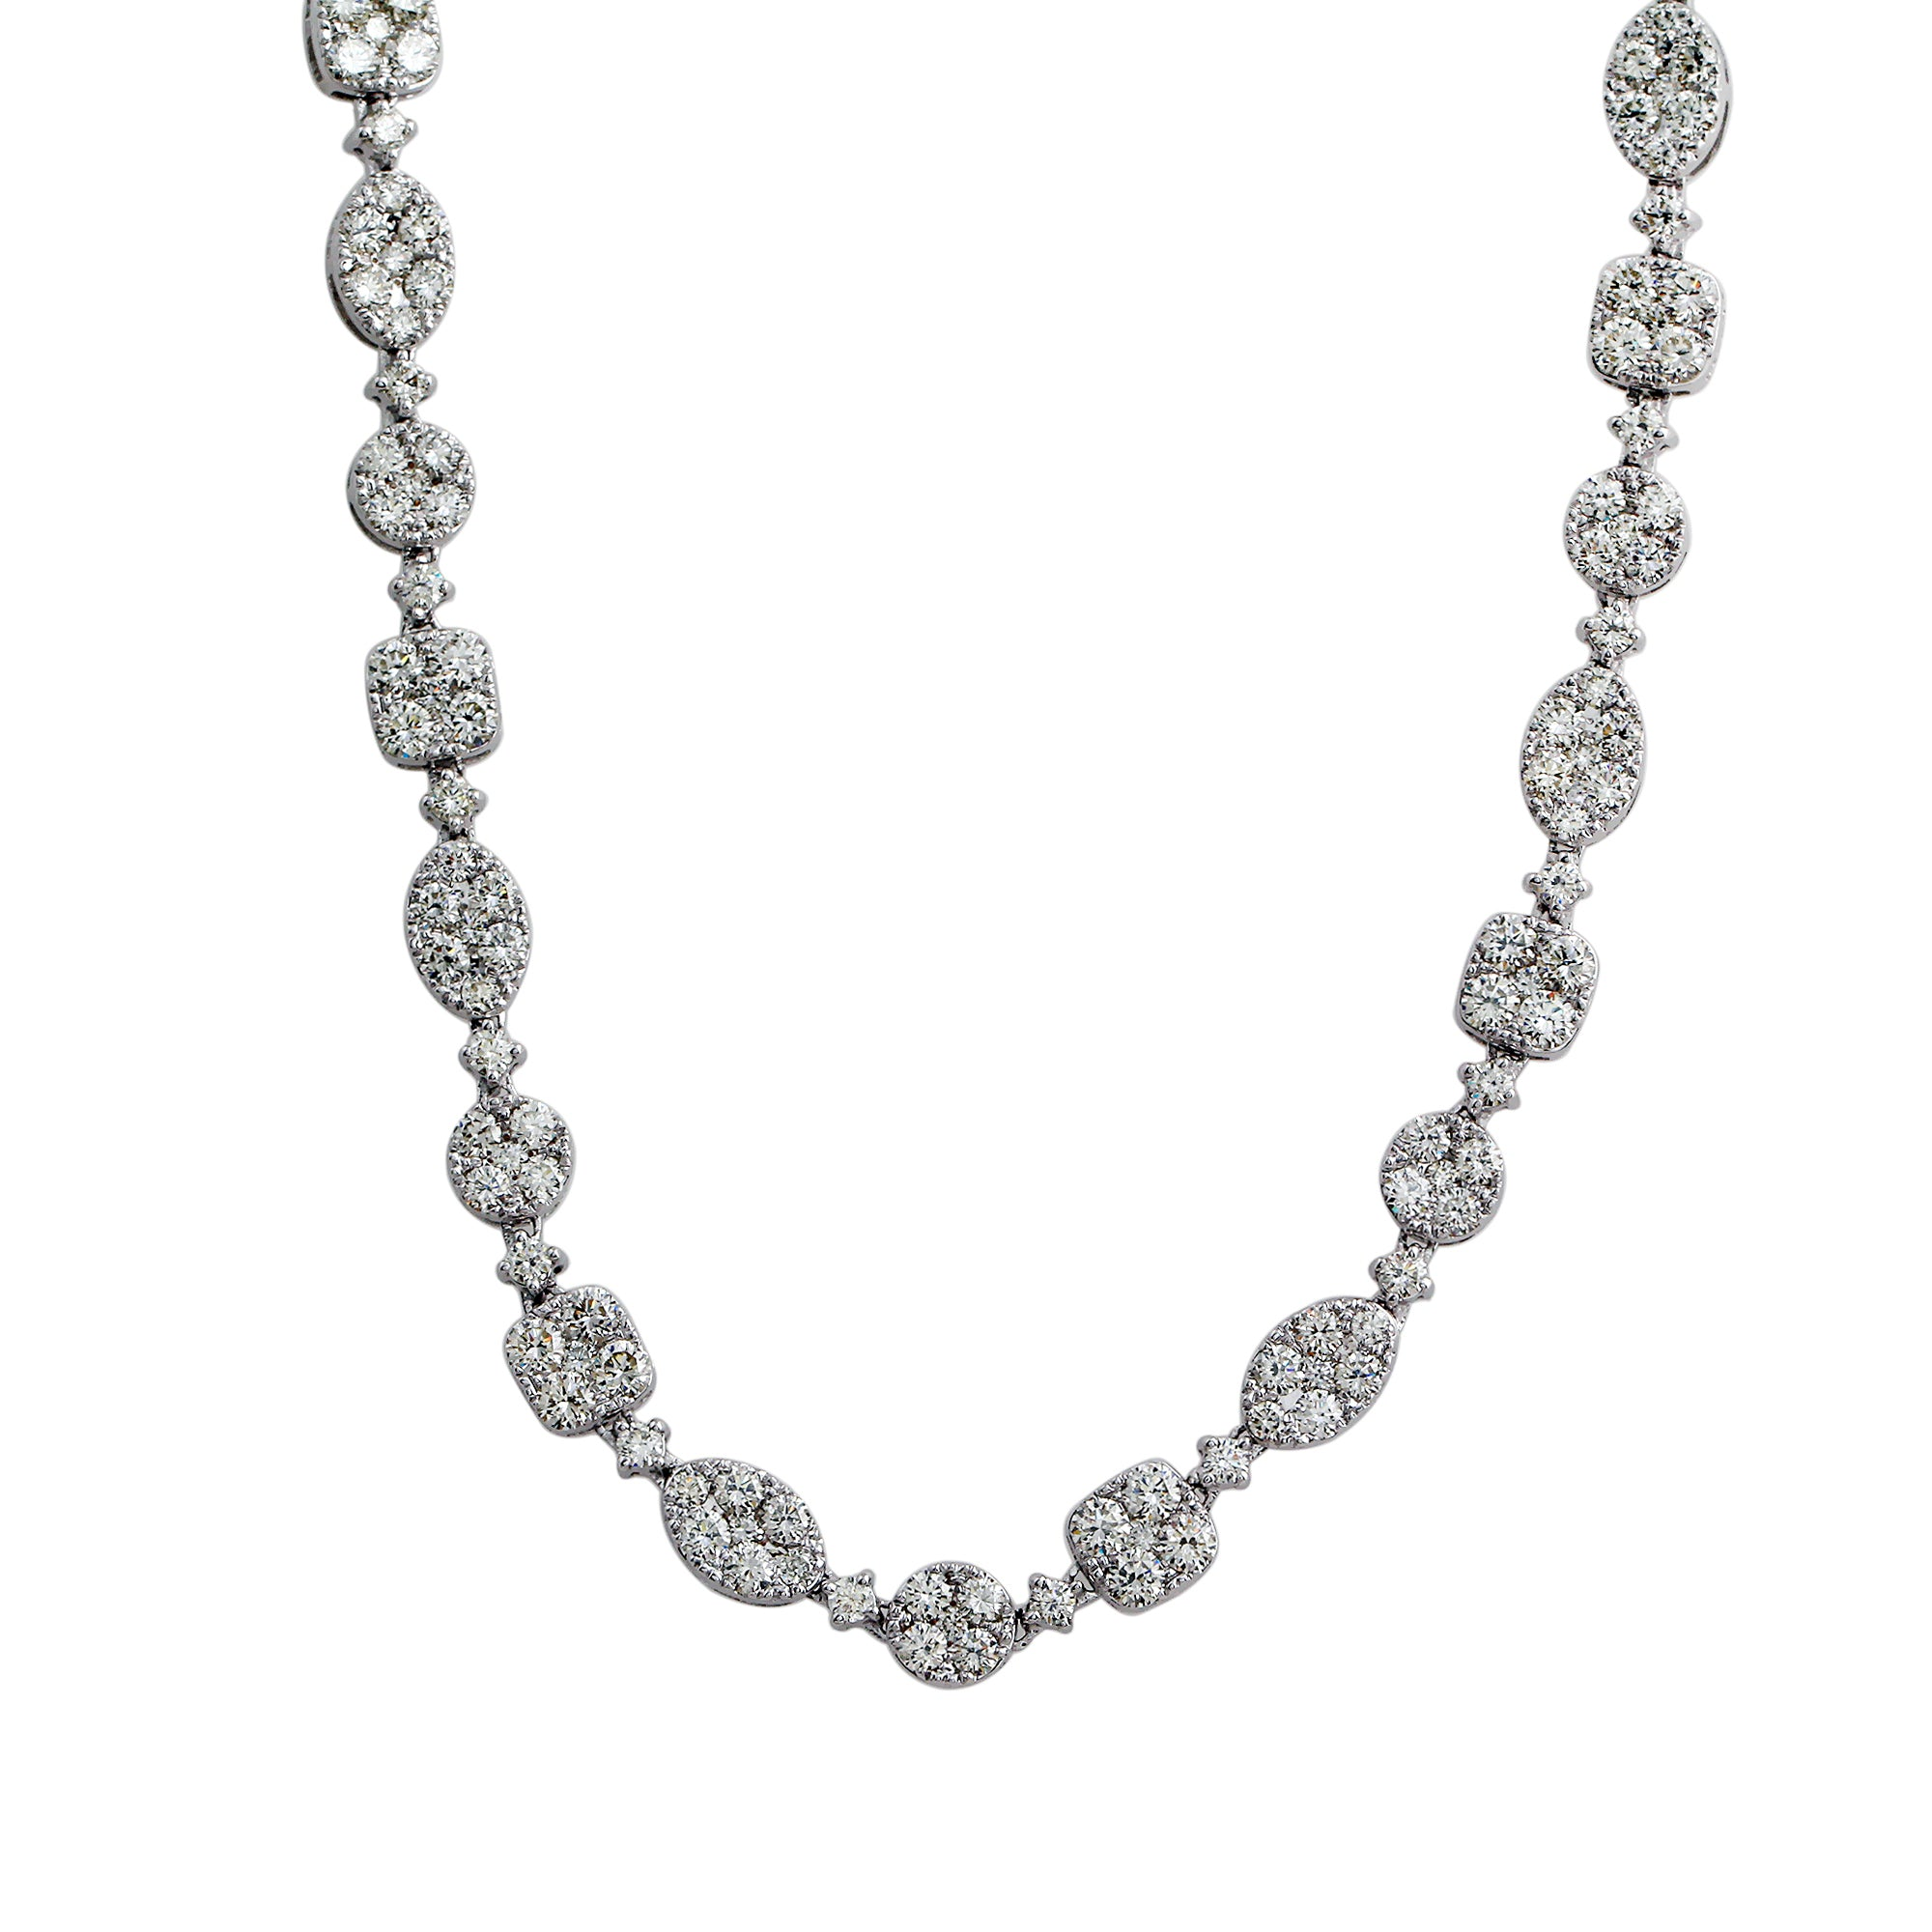 14K White Gold 16.65CTTW Lab-Grown Diamond Link Necklace 22""